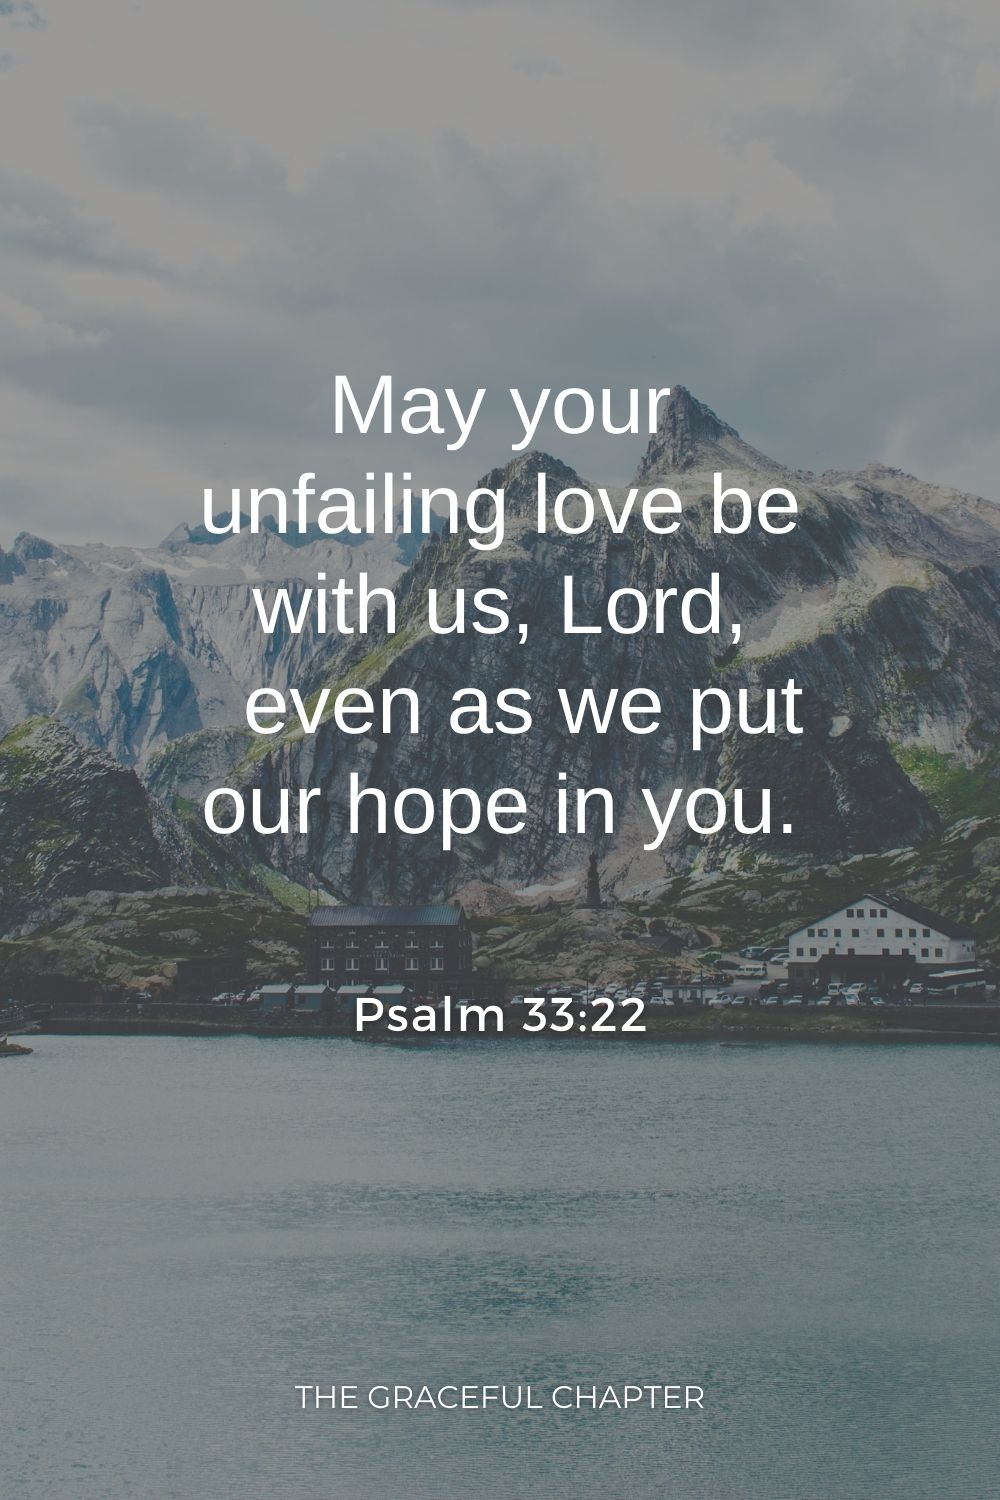 May your unfailing love be with us, Lord,     even as we put our hope in you. Psalm 33:22